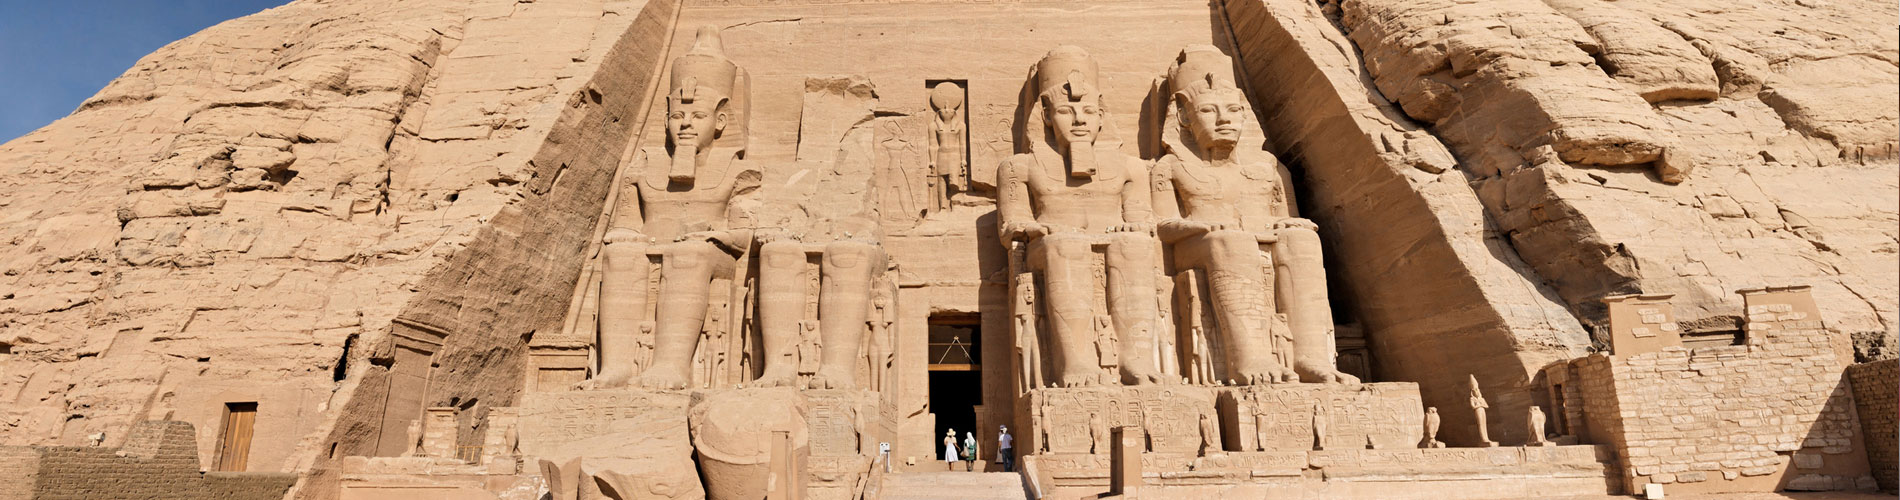 Special Event - Abu Simbel Sun Festival 2020 in Egypt!